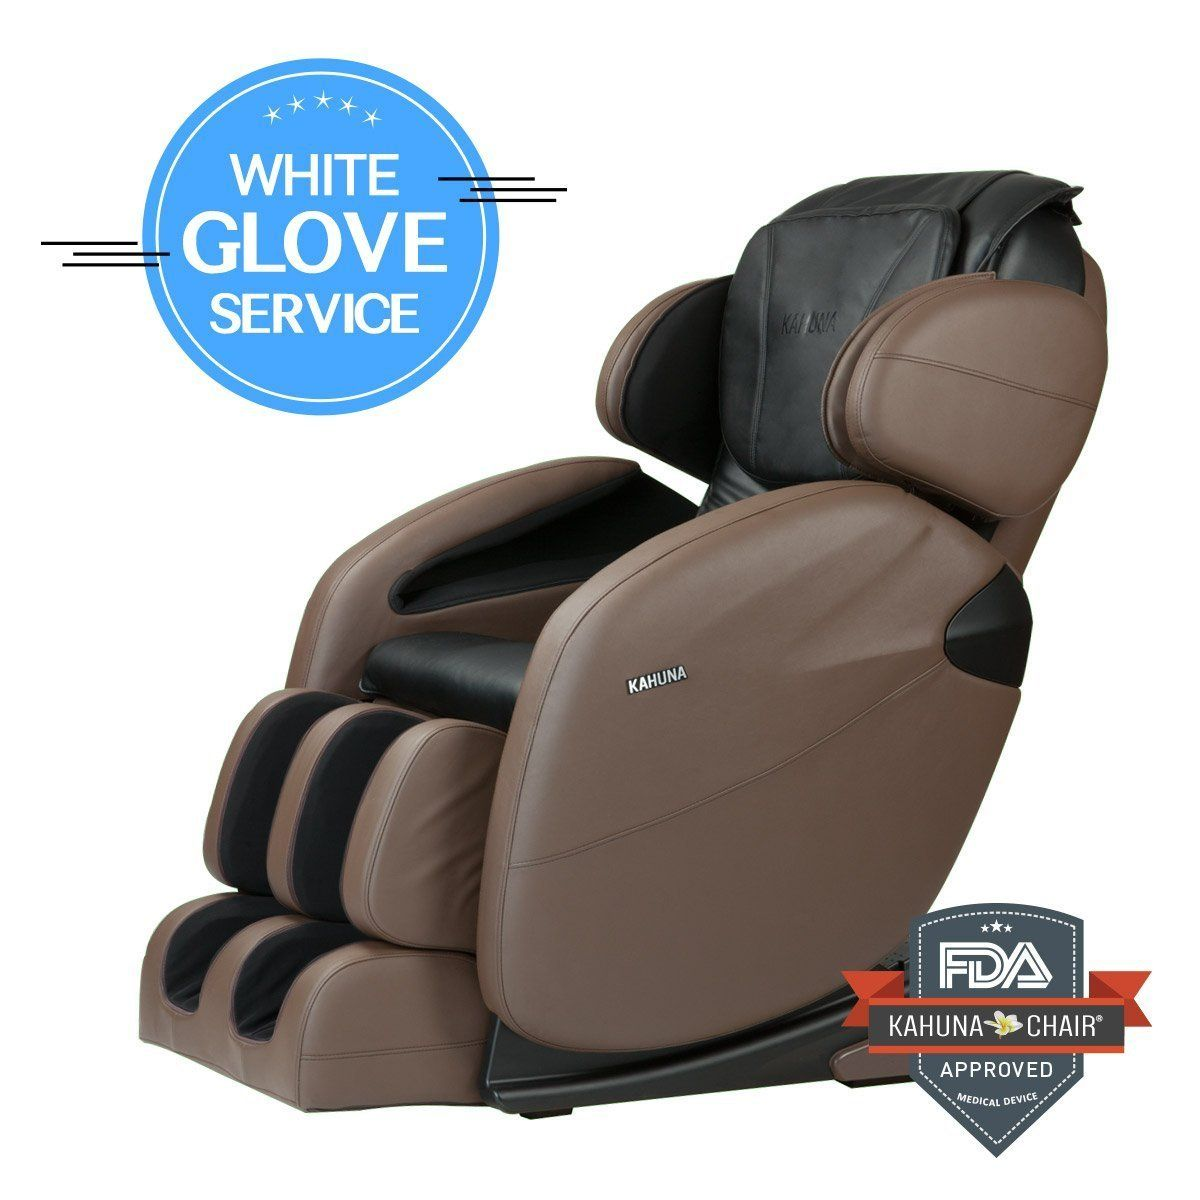 Space Saving Zero Gravity L Track Full Body Kahuna Massage Chair Recliner Lm6800 With 6 Auto